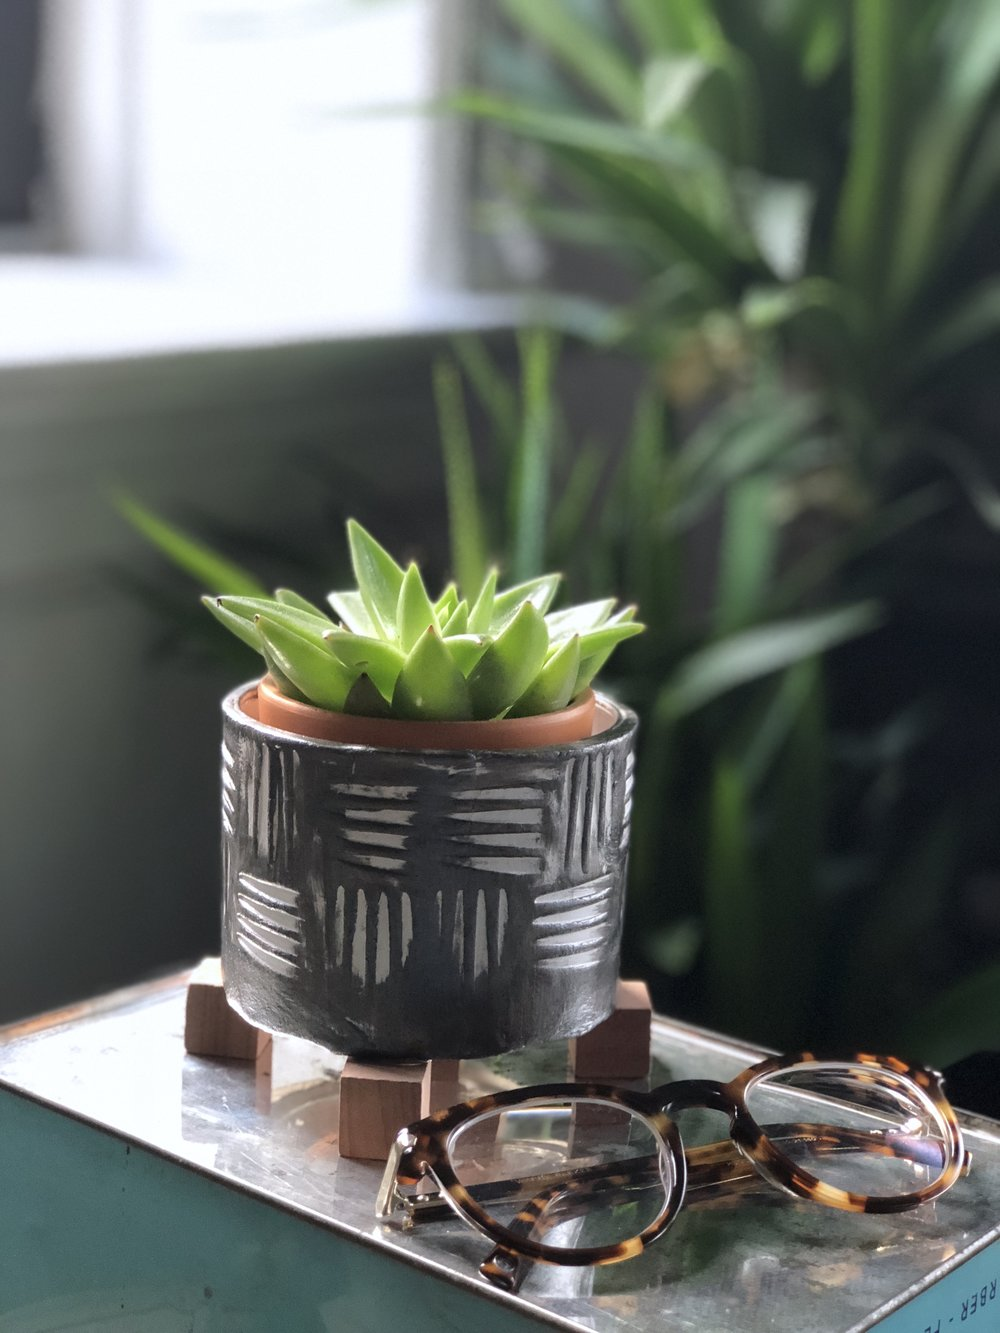 DIY Air Dry Clay Retro Textured Planters #midcenturymodern #upcycle #recycle #succulents